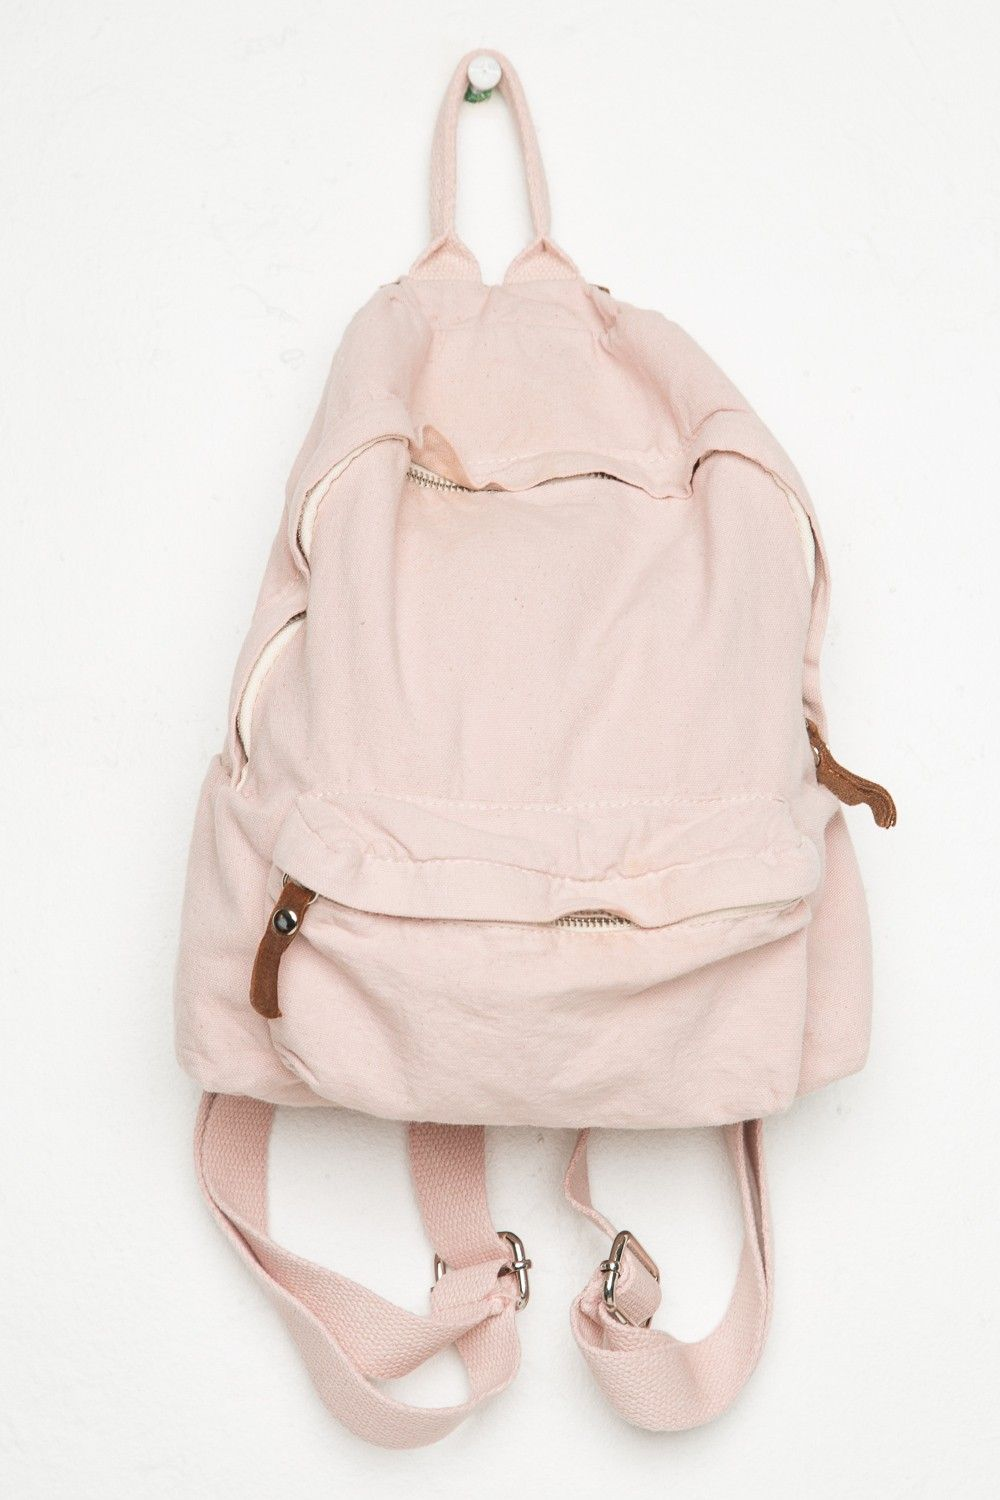 714ad152b3 Brandy Melville Pink Mini Backpack | Backpacks, satchel, totes ...